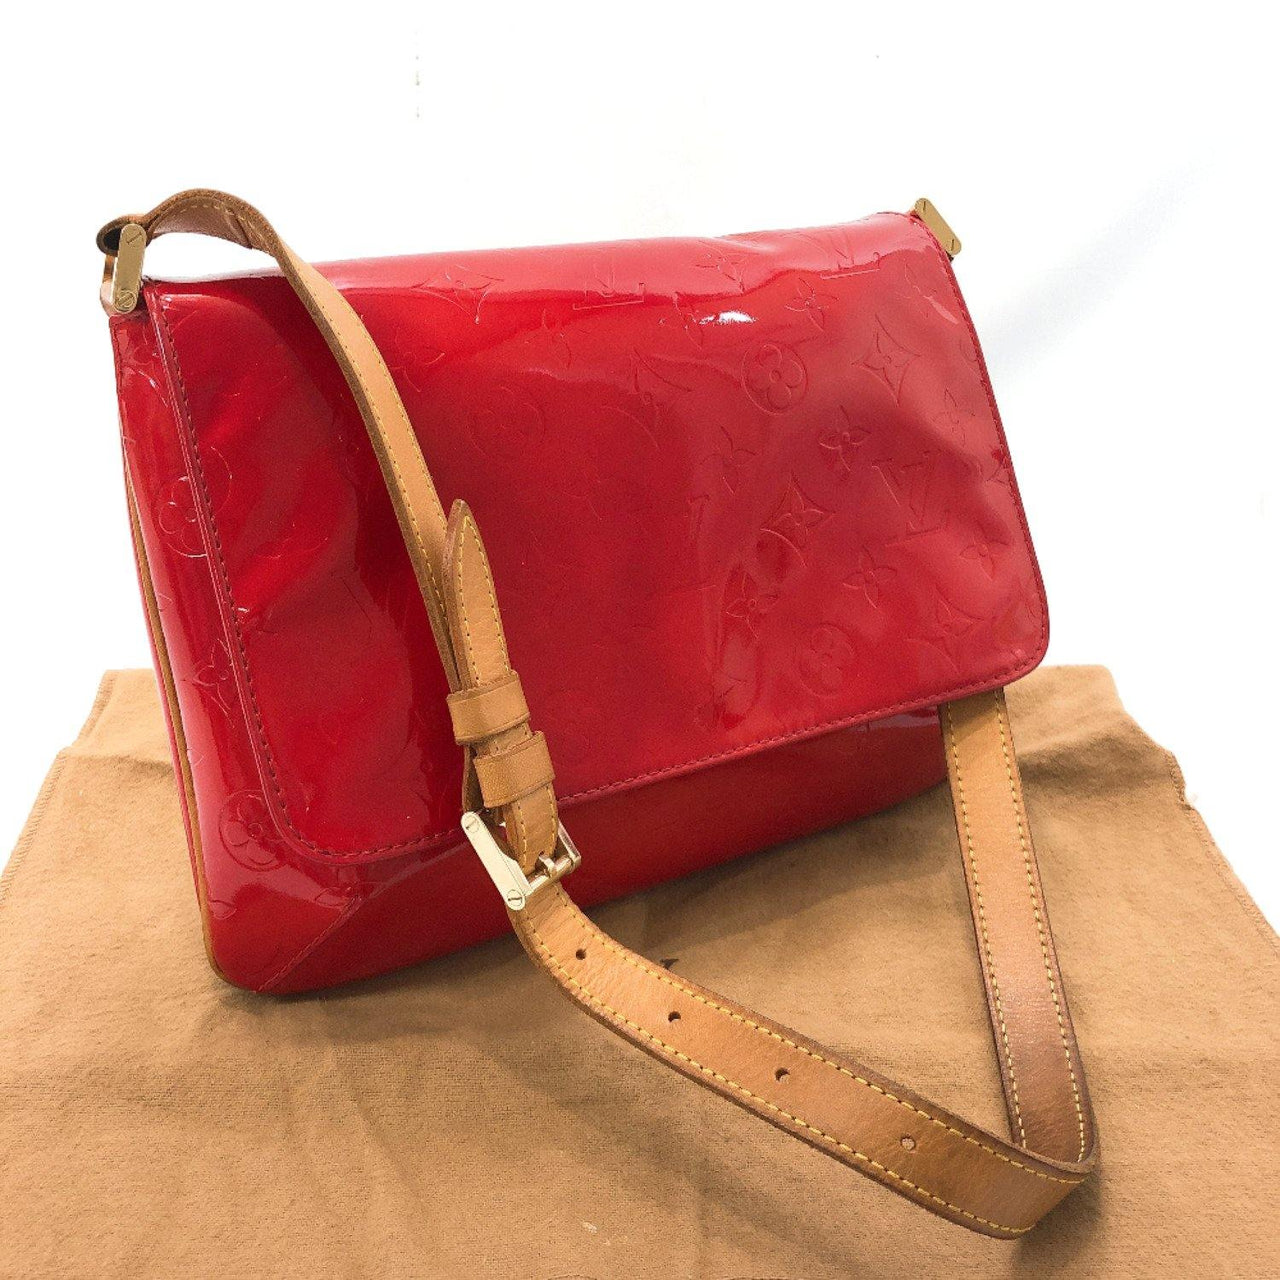 LOUIS VUITTON Shoulder Bag M91094 Thompson Street Monogram Vernis/Leather Red Women Used - JP-BRANDS.com